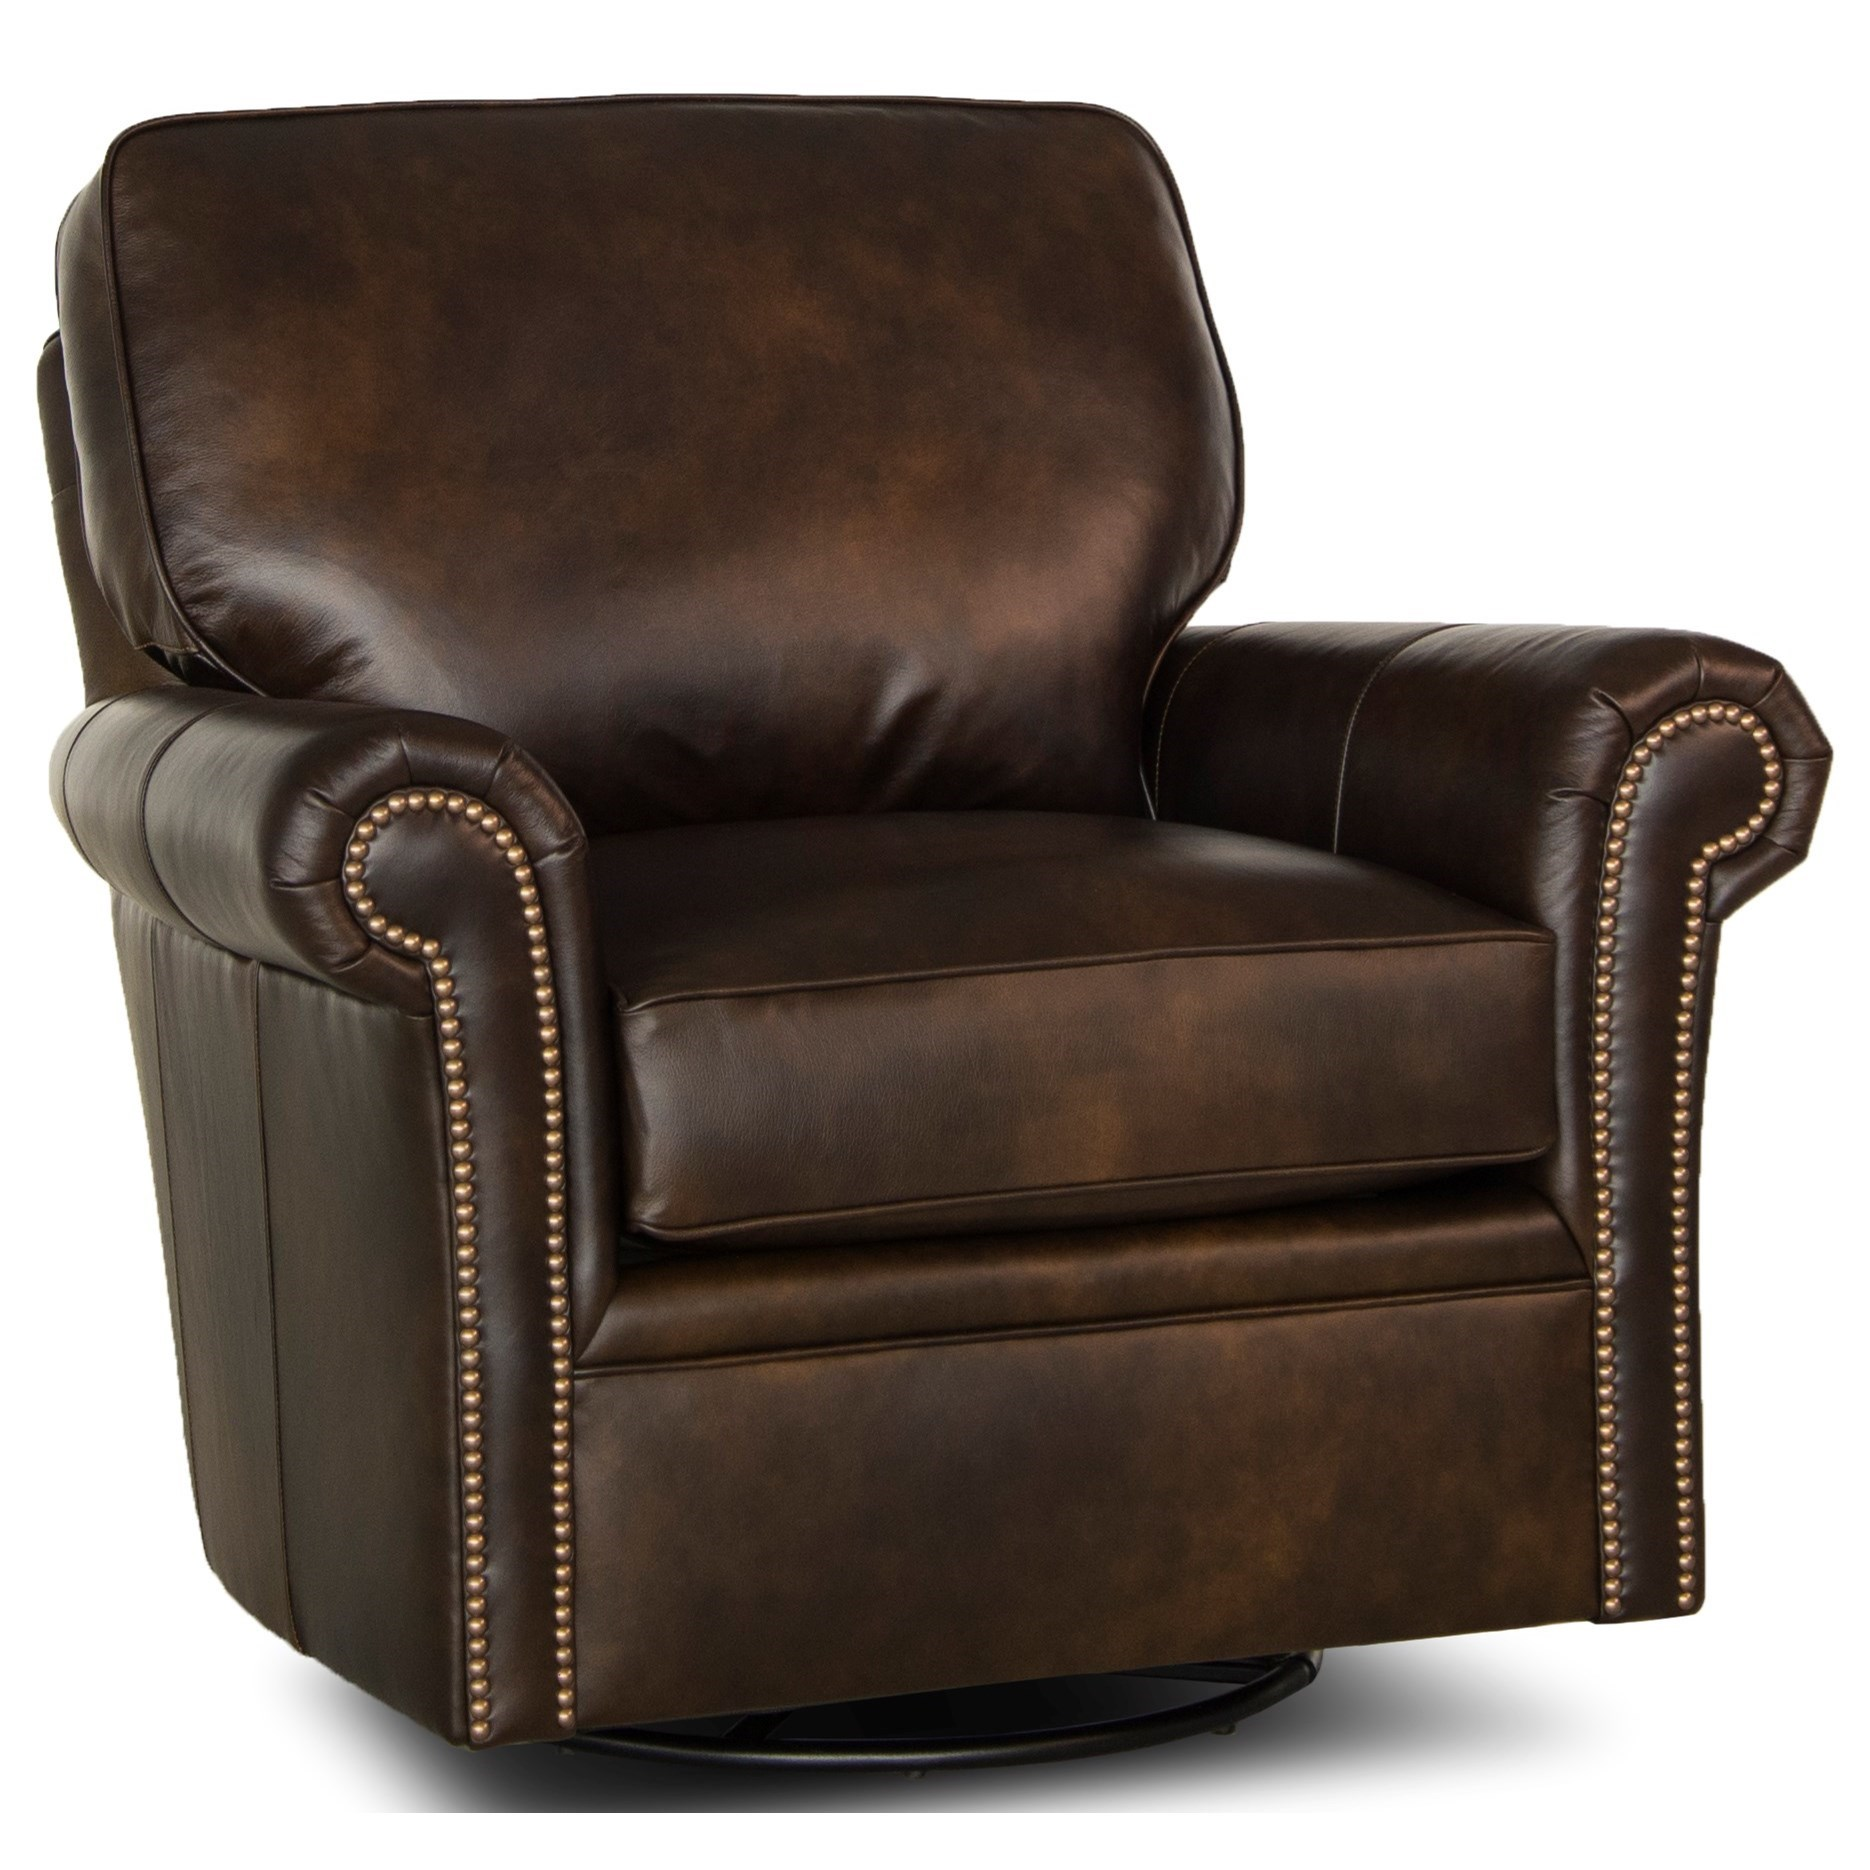 Smith Brothers 528 Swivel Glider Chair - Item Number: 528L-58-6711